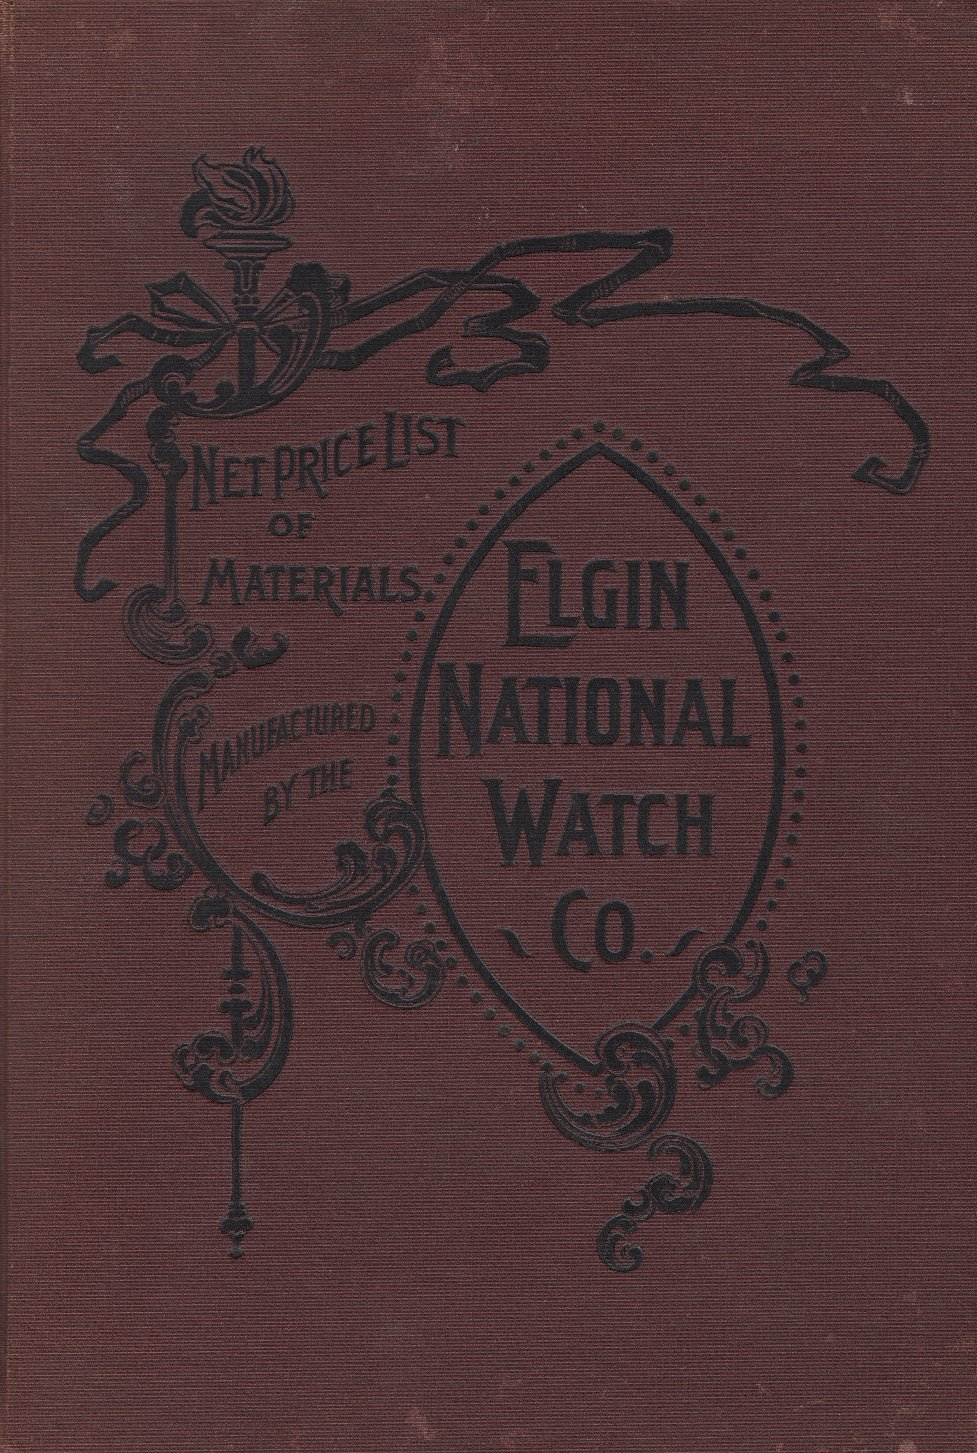 Net Price List of Materials Manufactured by the Elgin National Watch Co. (1896) Cover Image